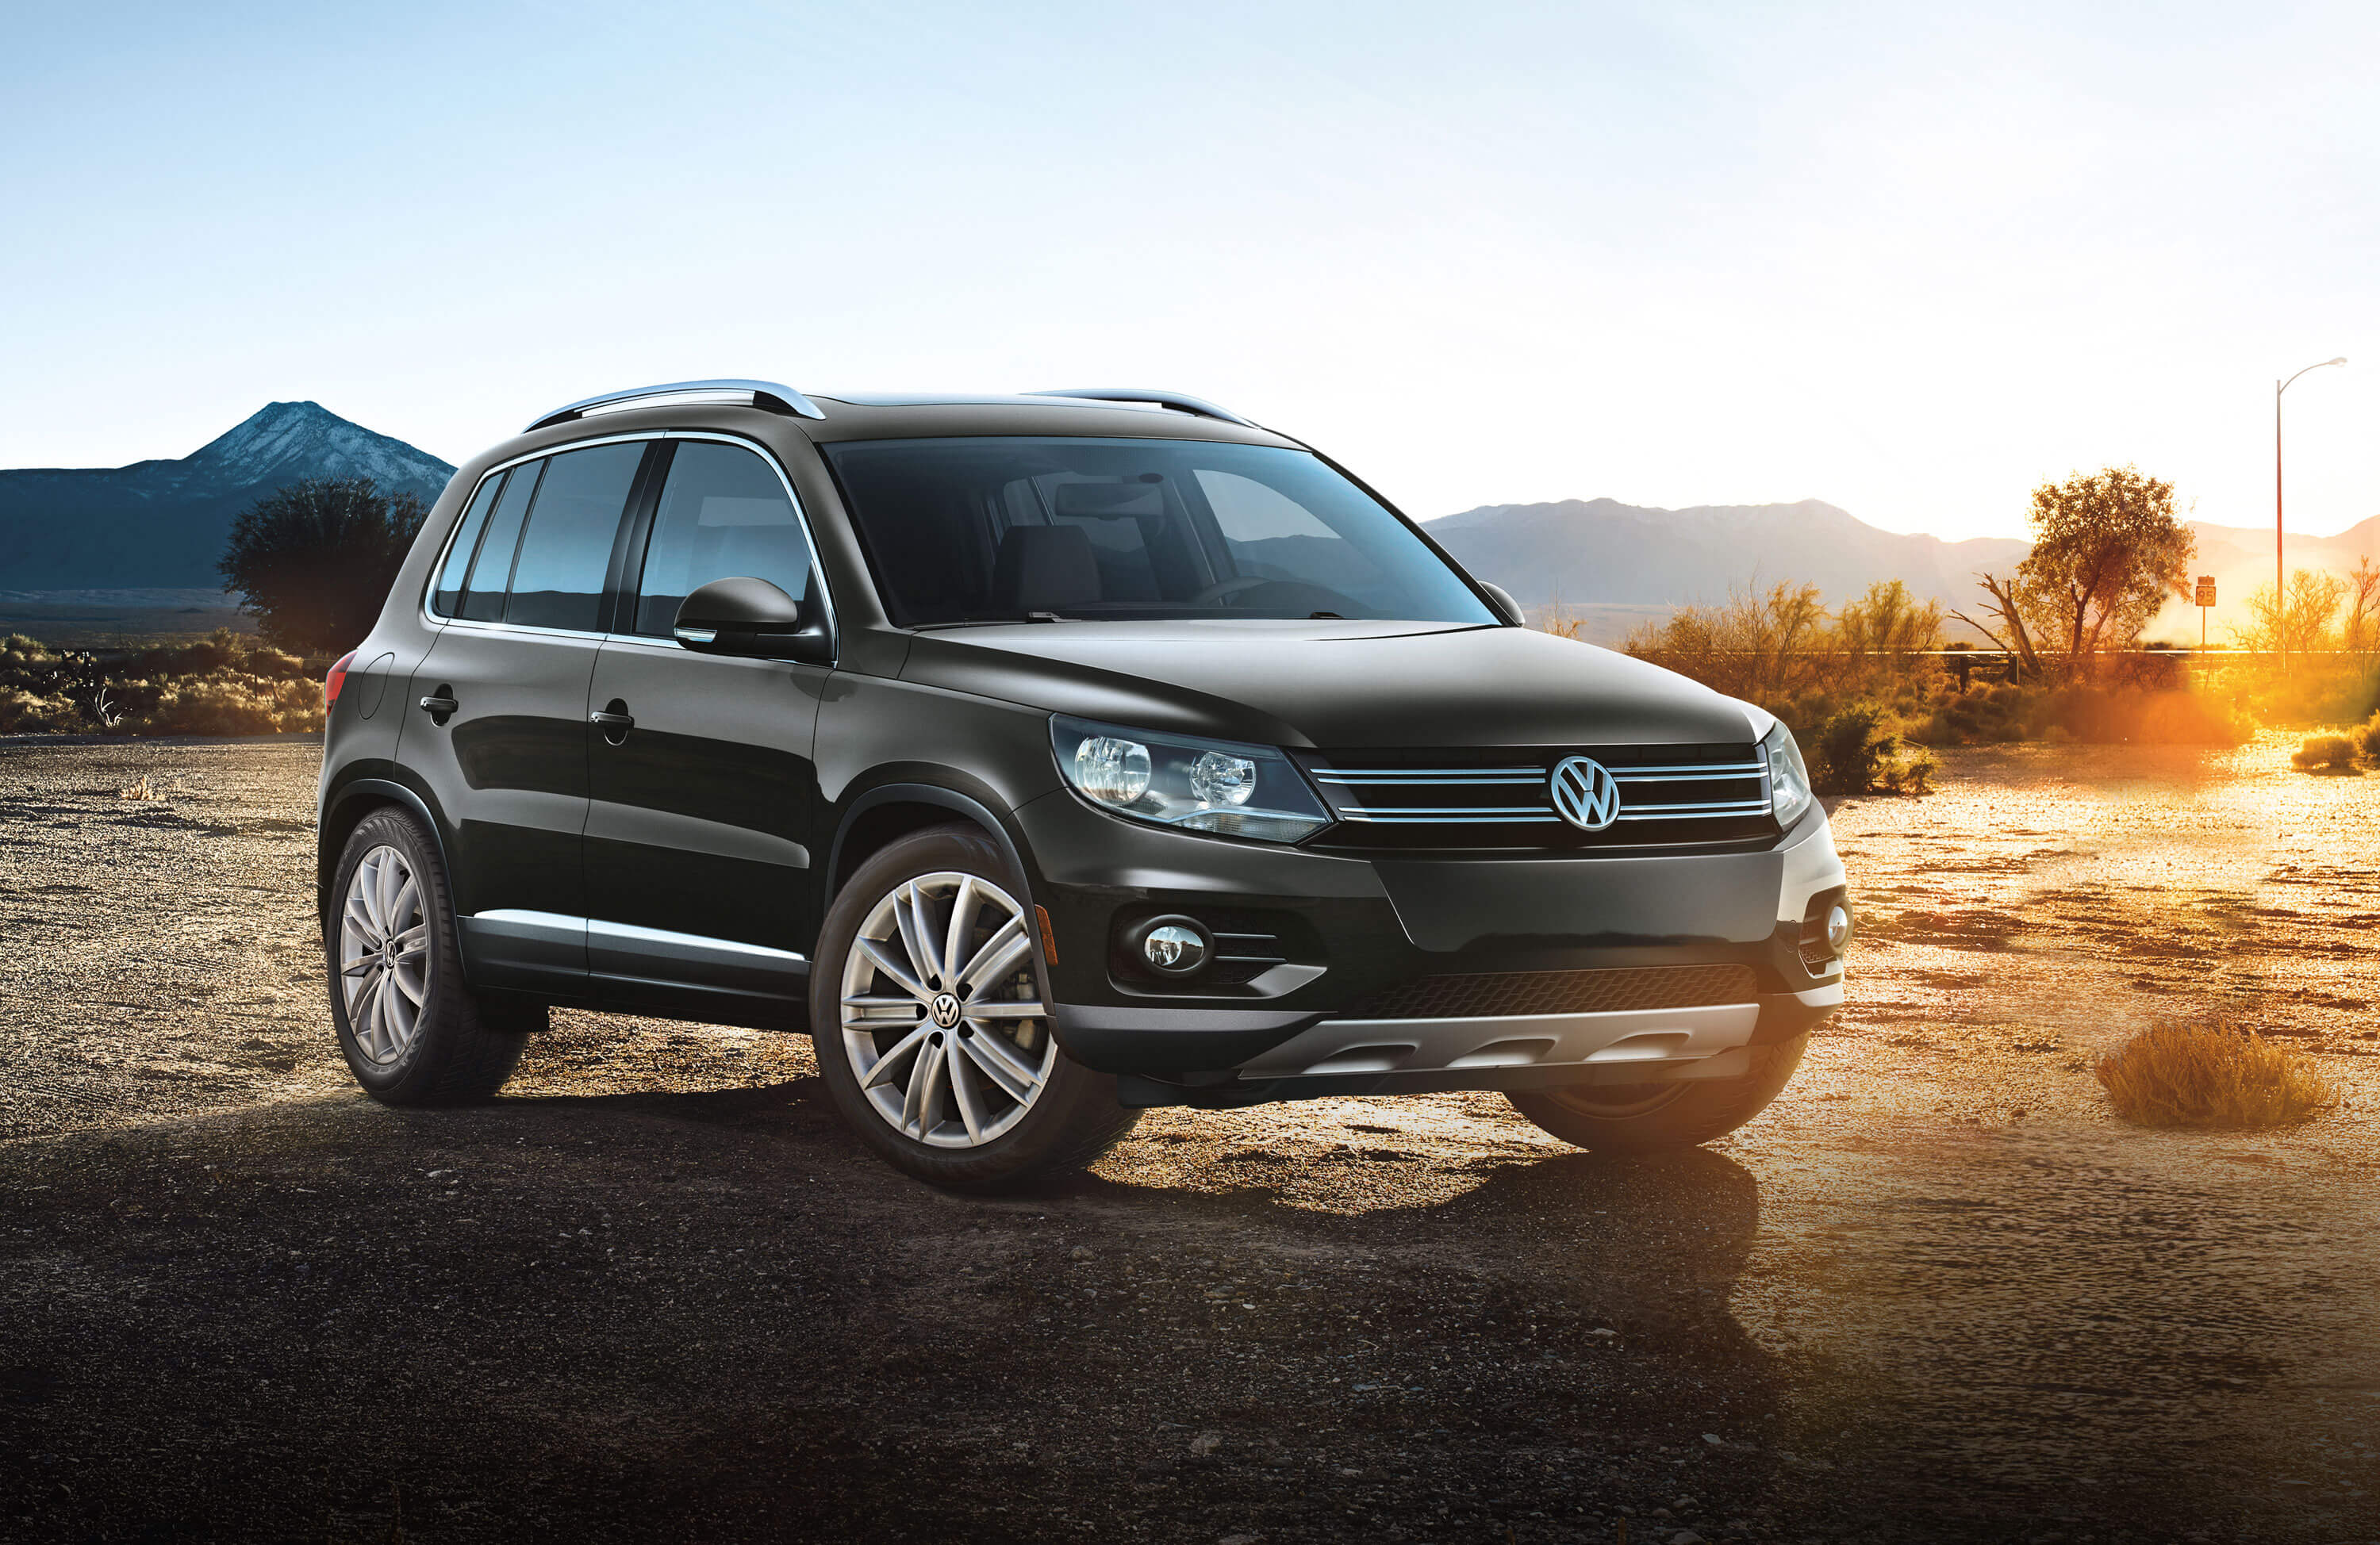 2015 volkswagen tiguan safety features norm reeves volkswagen irvine. Black Bedroom Furniture Sets. Home Design Ideas